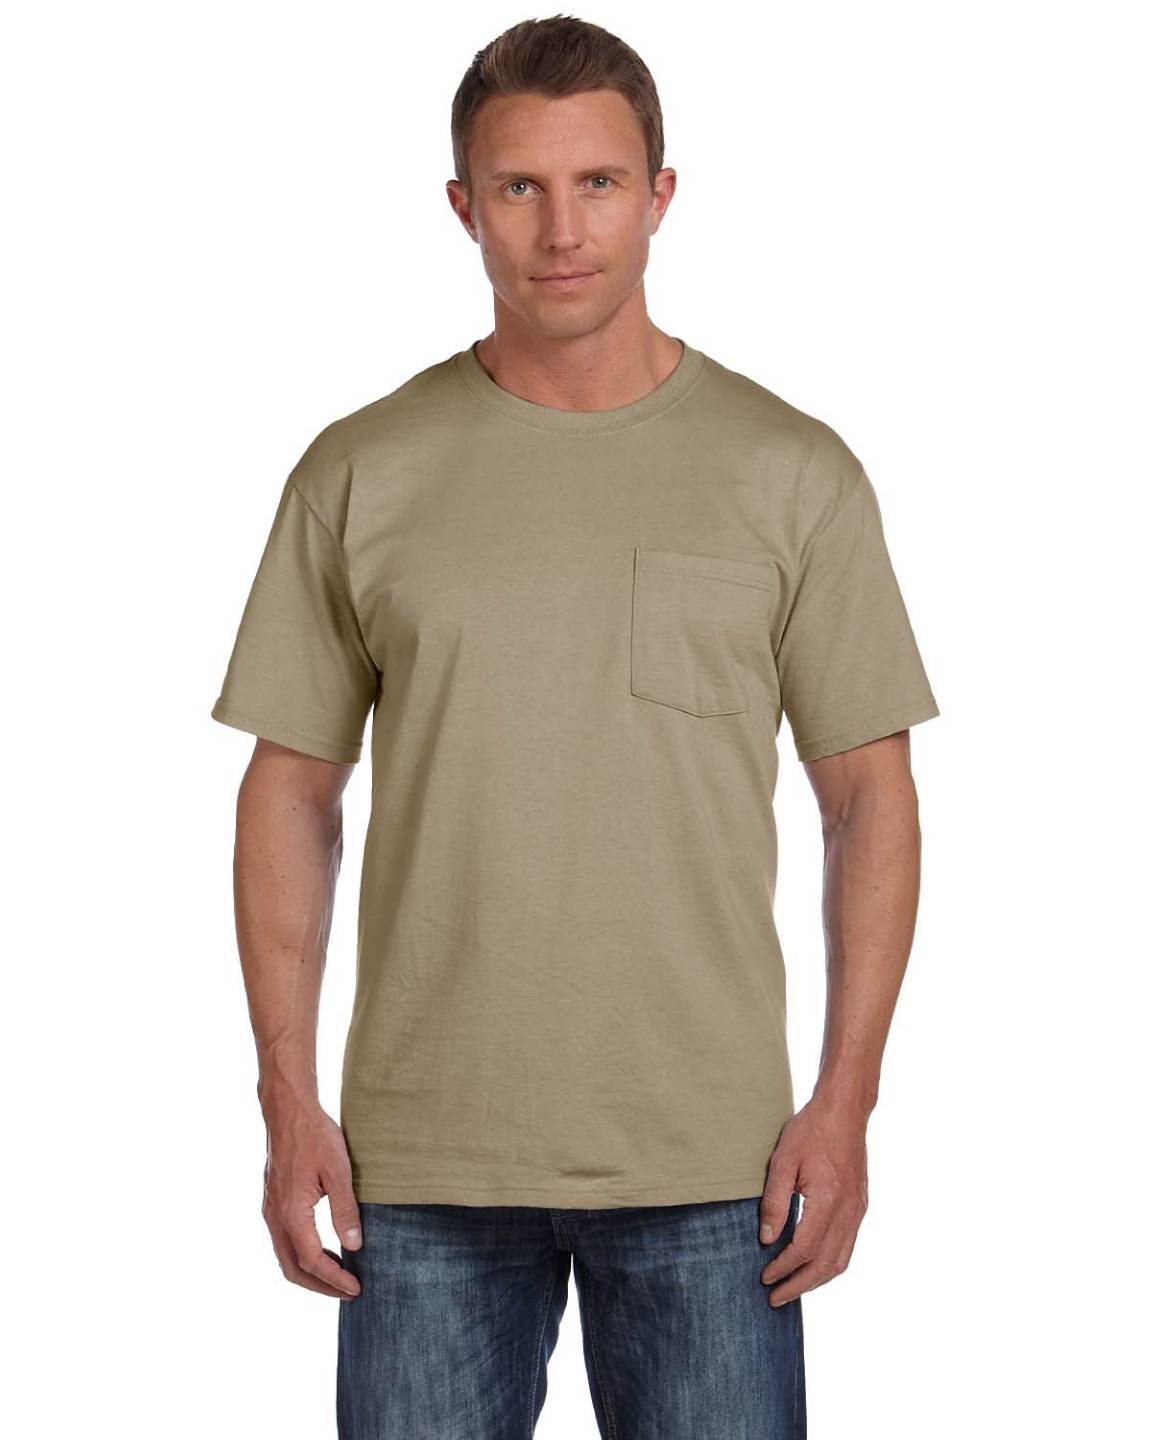 About Men's Tall Clothing. Eddie Bauer offers big and tall men's clothing in a wide range of colors, styles and fabrics. For a great selection of superbly made large-size men's clothing, including men's XXXL and tall sizing, your Original Outdoor Outfitter® is the ideal destination.